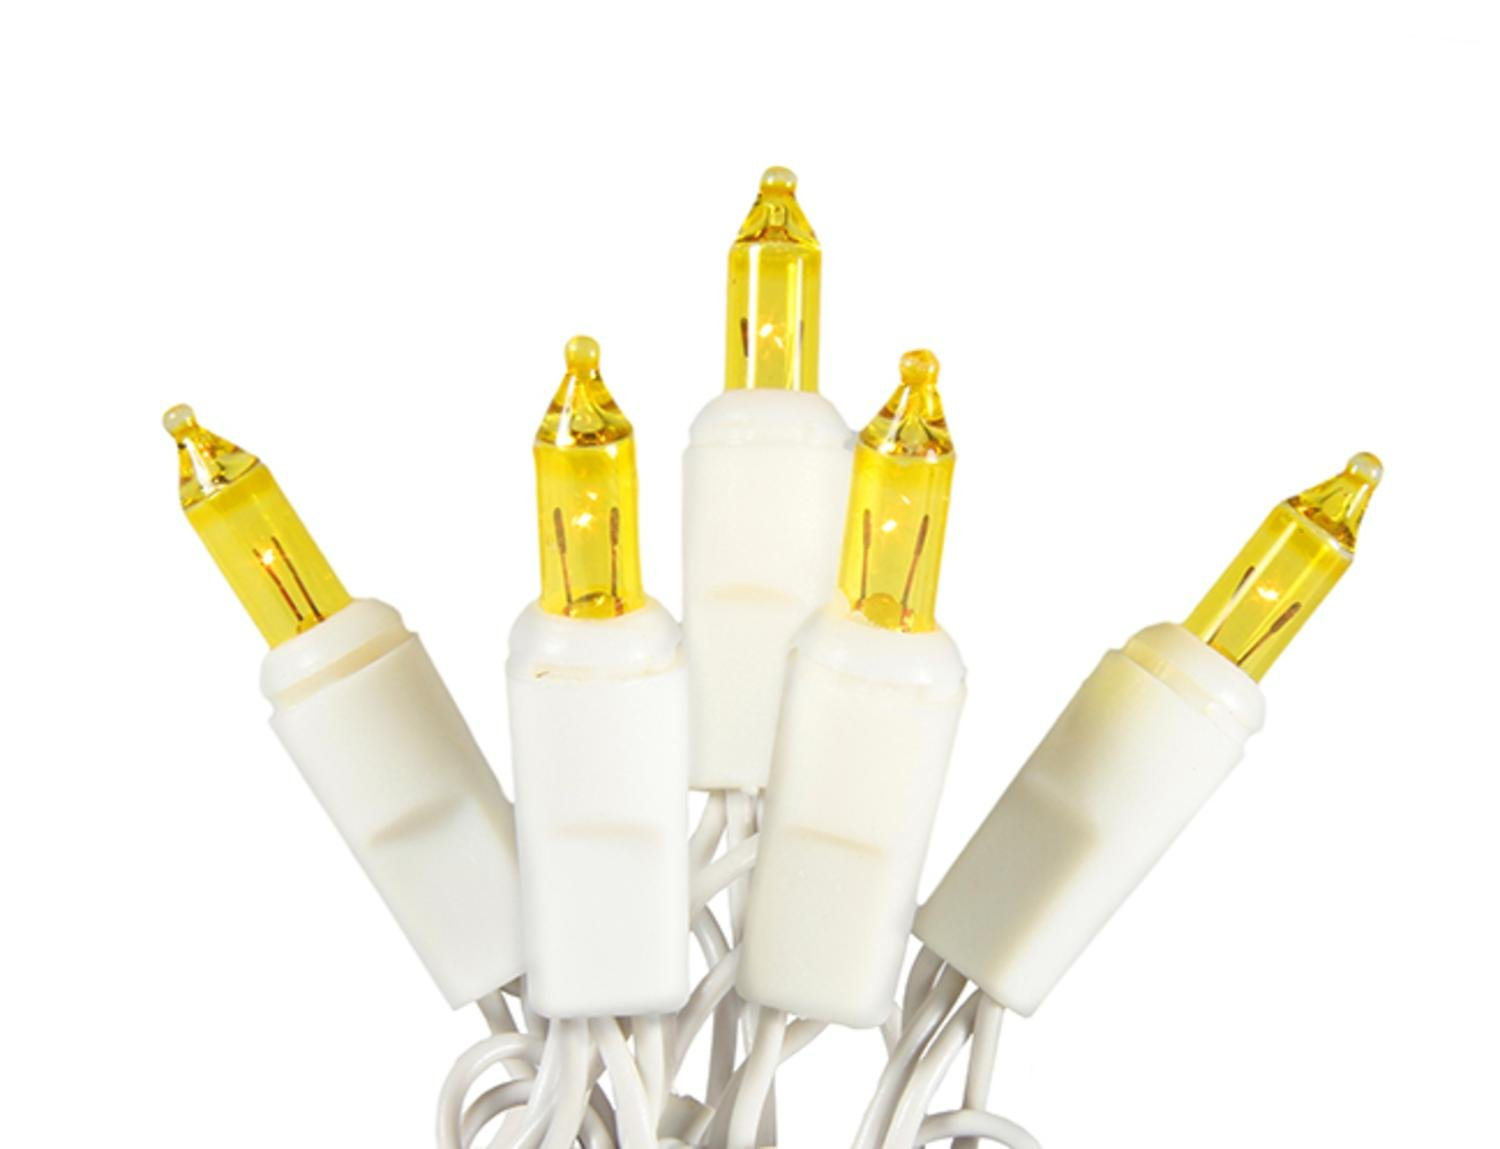 Sienna Set of 20 Battery Operated Gold Mini Christmas Lights - White Wire